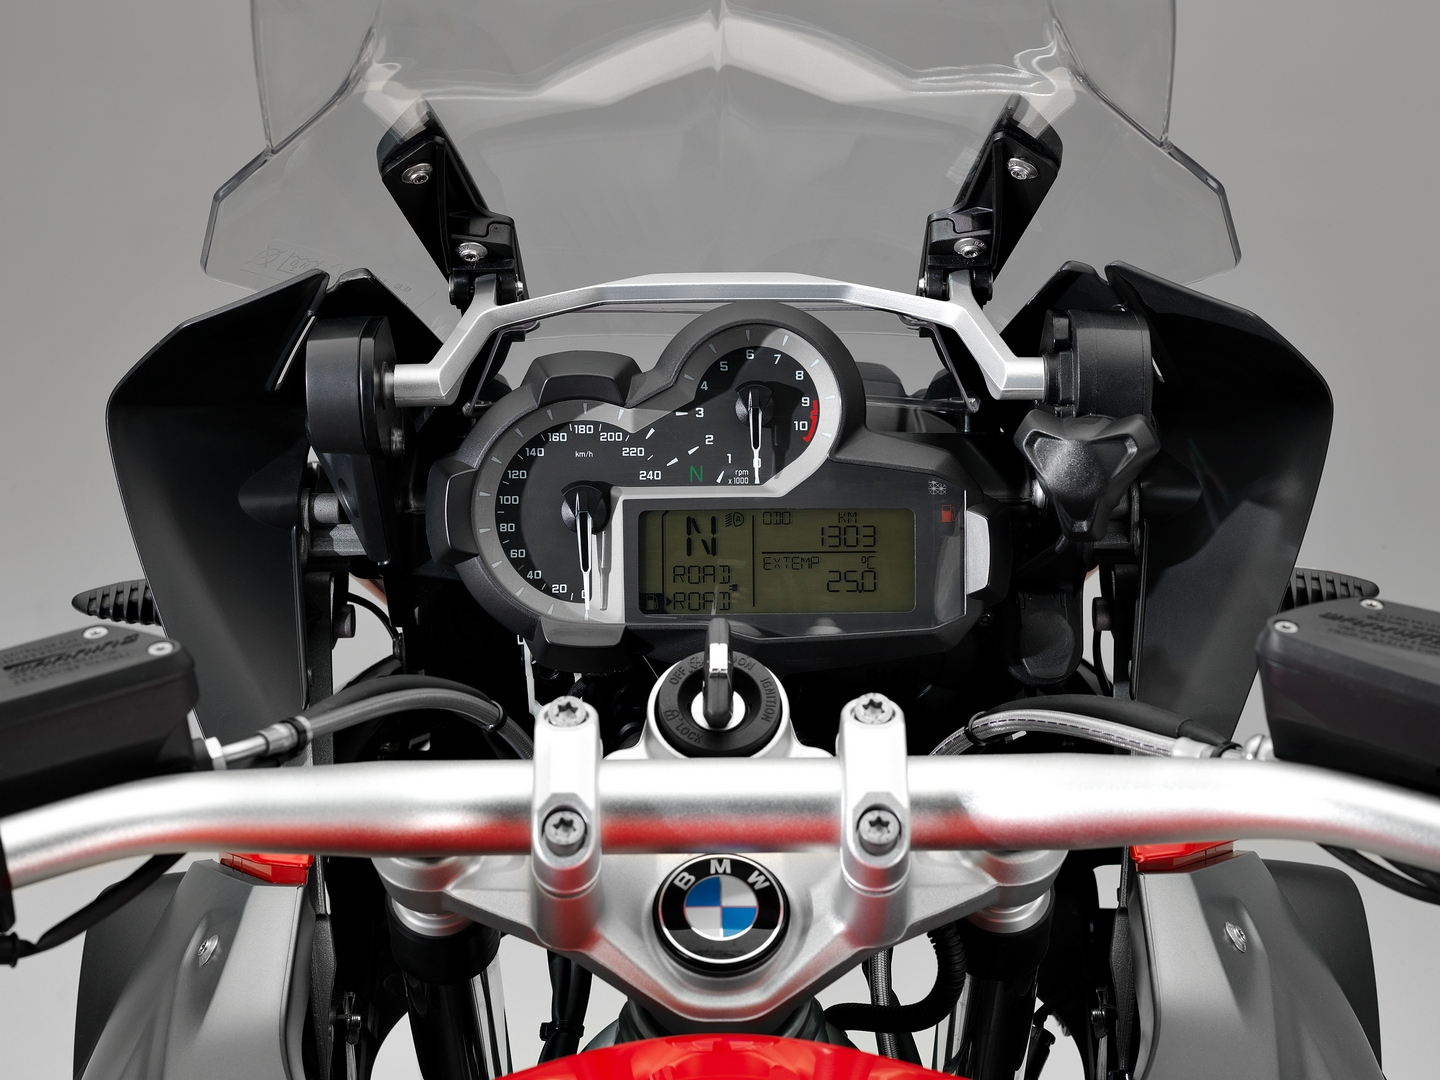 No 2013 BMW R1200GS Deliveries, the Telelever Is Screwed ...